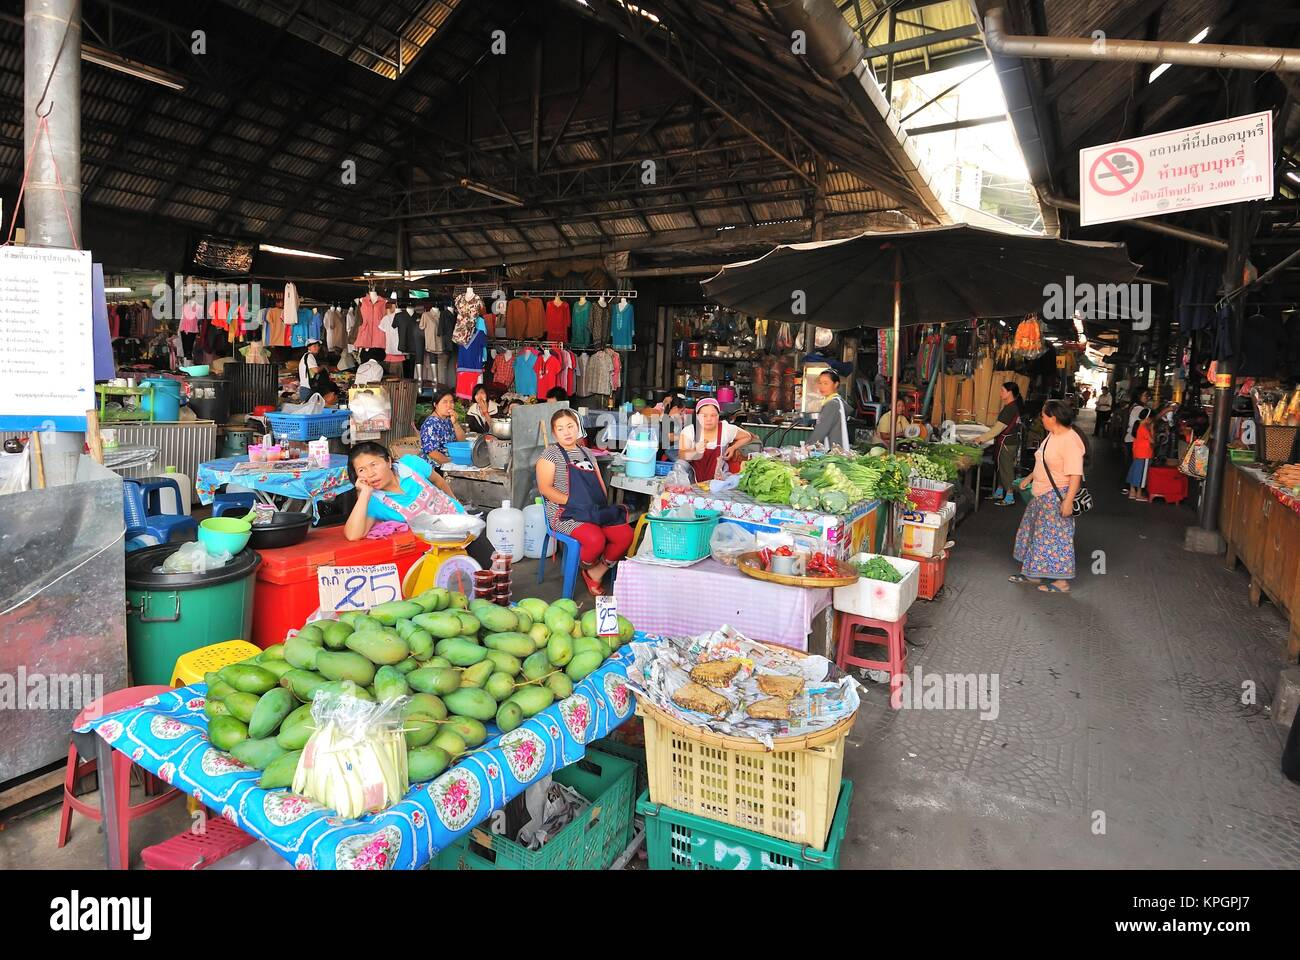 Market and grocery stalls commonly found in Thailand and other Asian countries selling various food ingredients Stock Photo